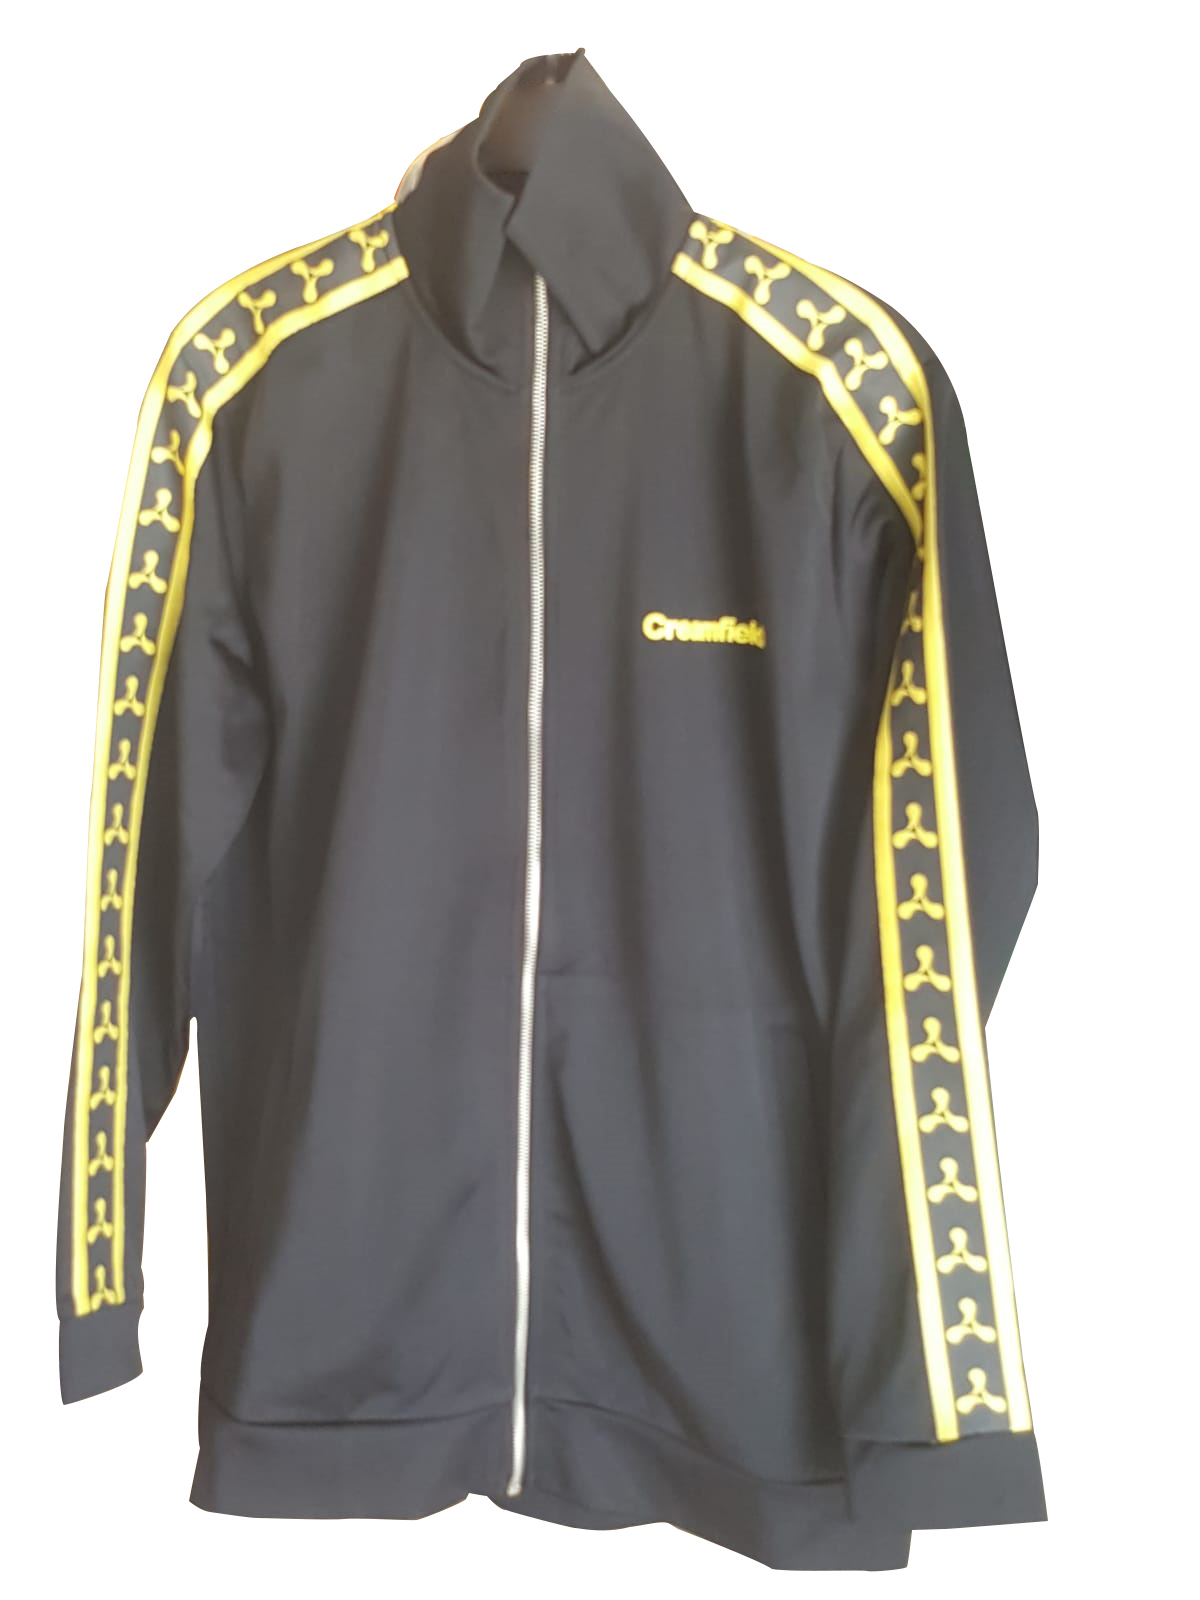 Decorated jackets